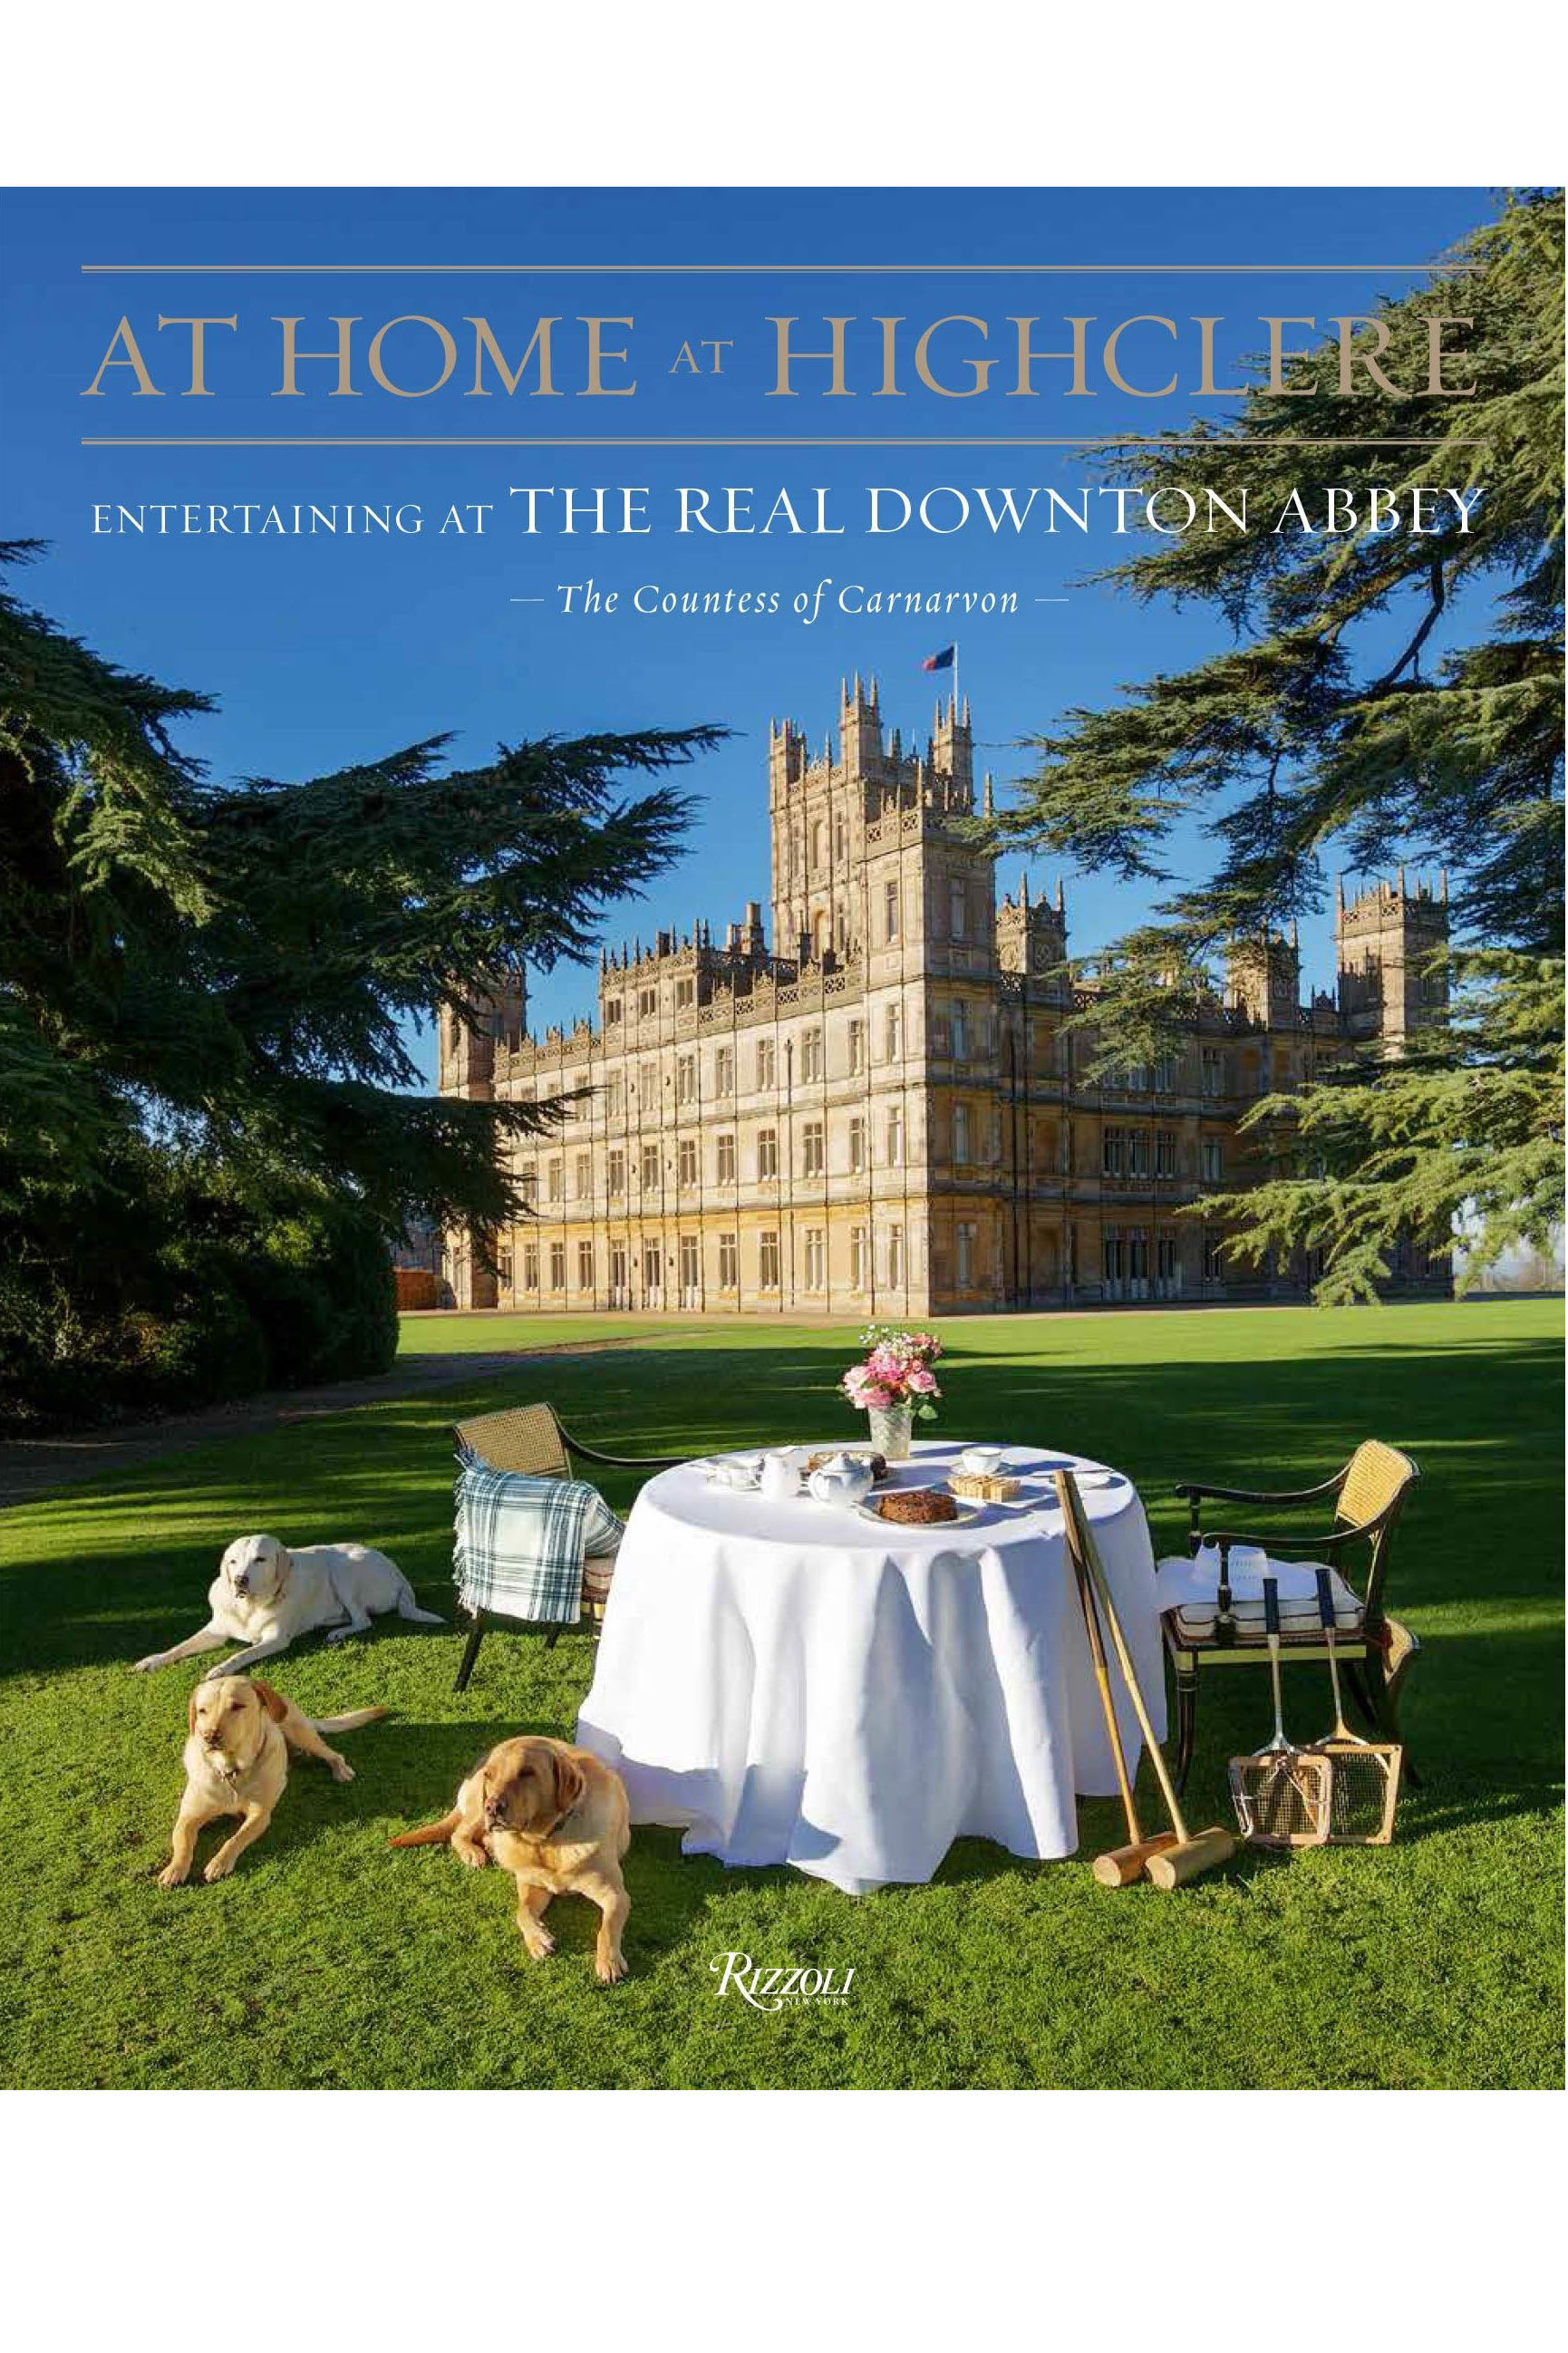 'Downton Abbey' Digs: Learn How the Real Residents of Highclere Castle Entertain